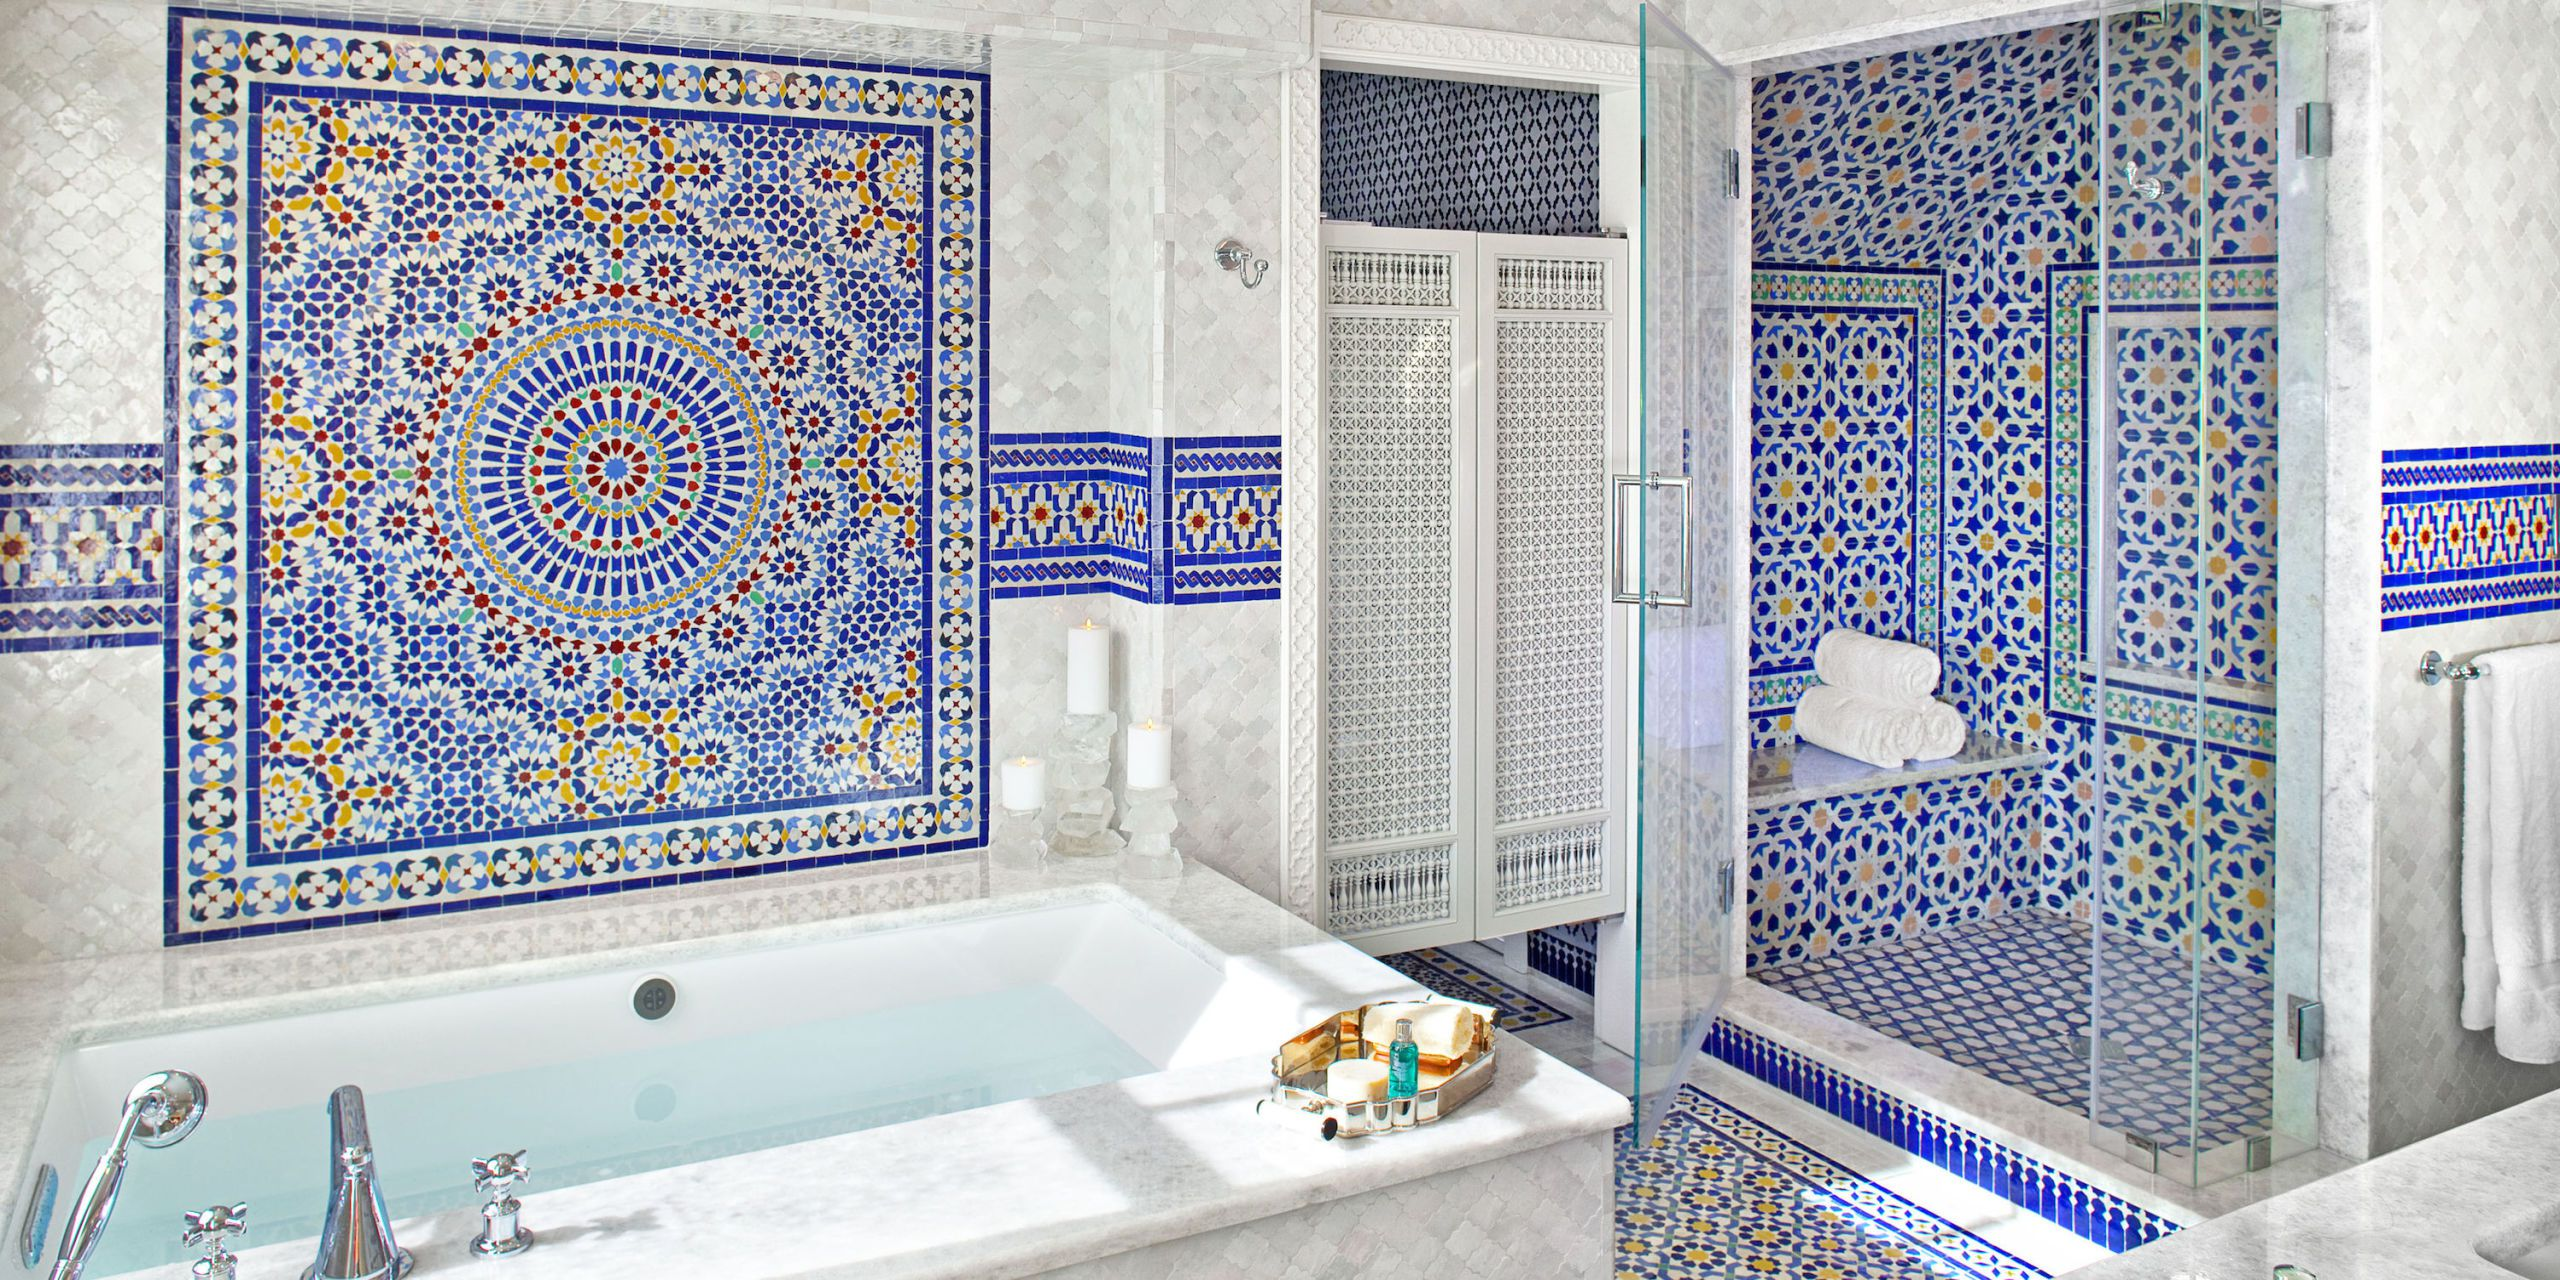 bathroom tiling ideas eric striffler ZGXZIGN